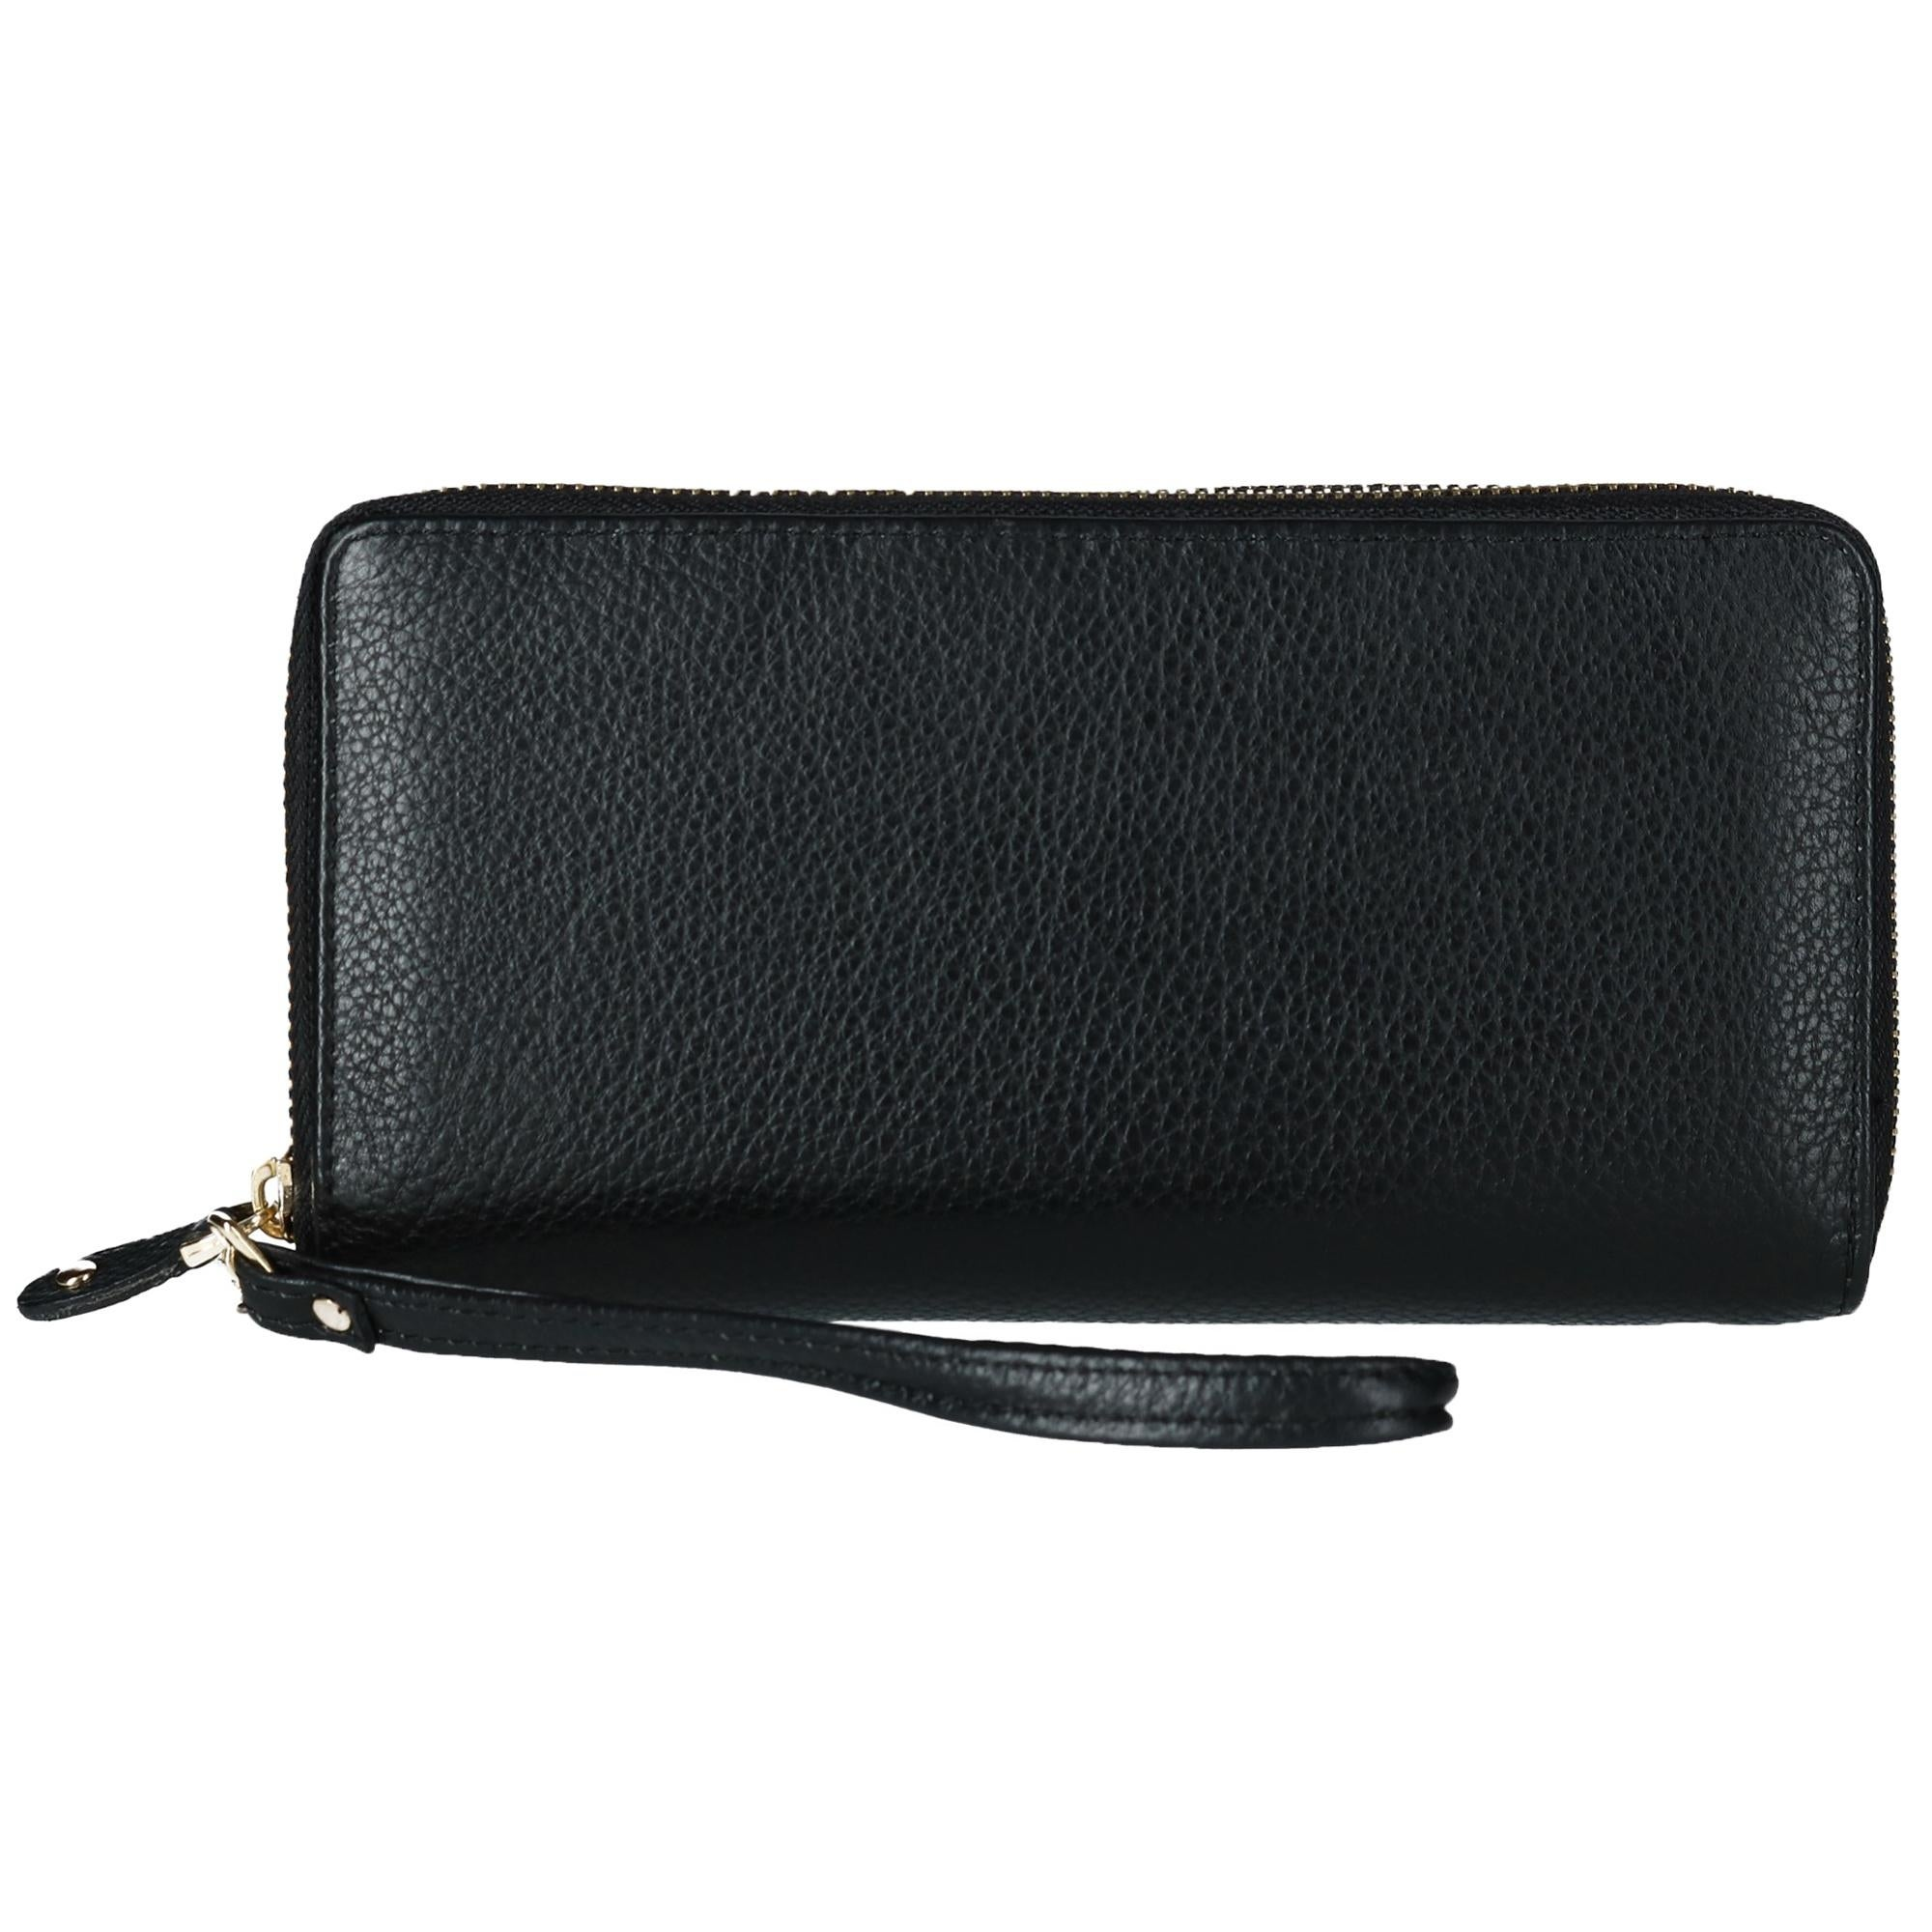 f8a7d643cad5 Shop Ctm Women S Leather Zip Around Wallet With Brass Hardware